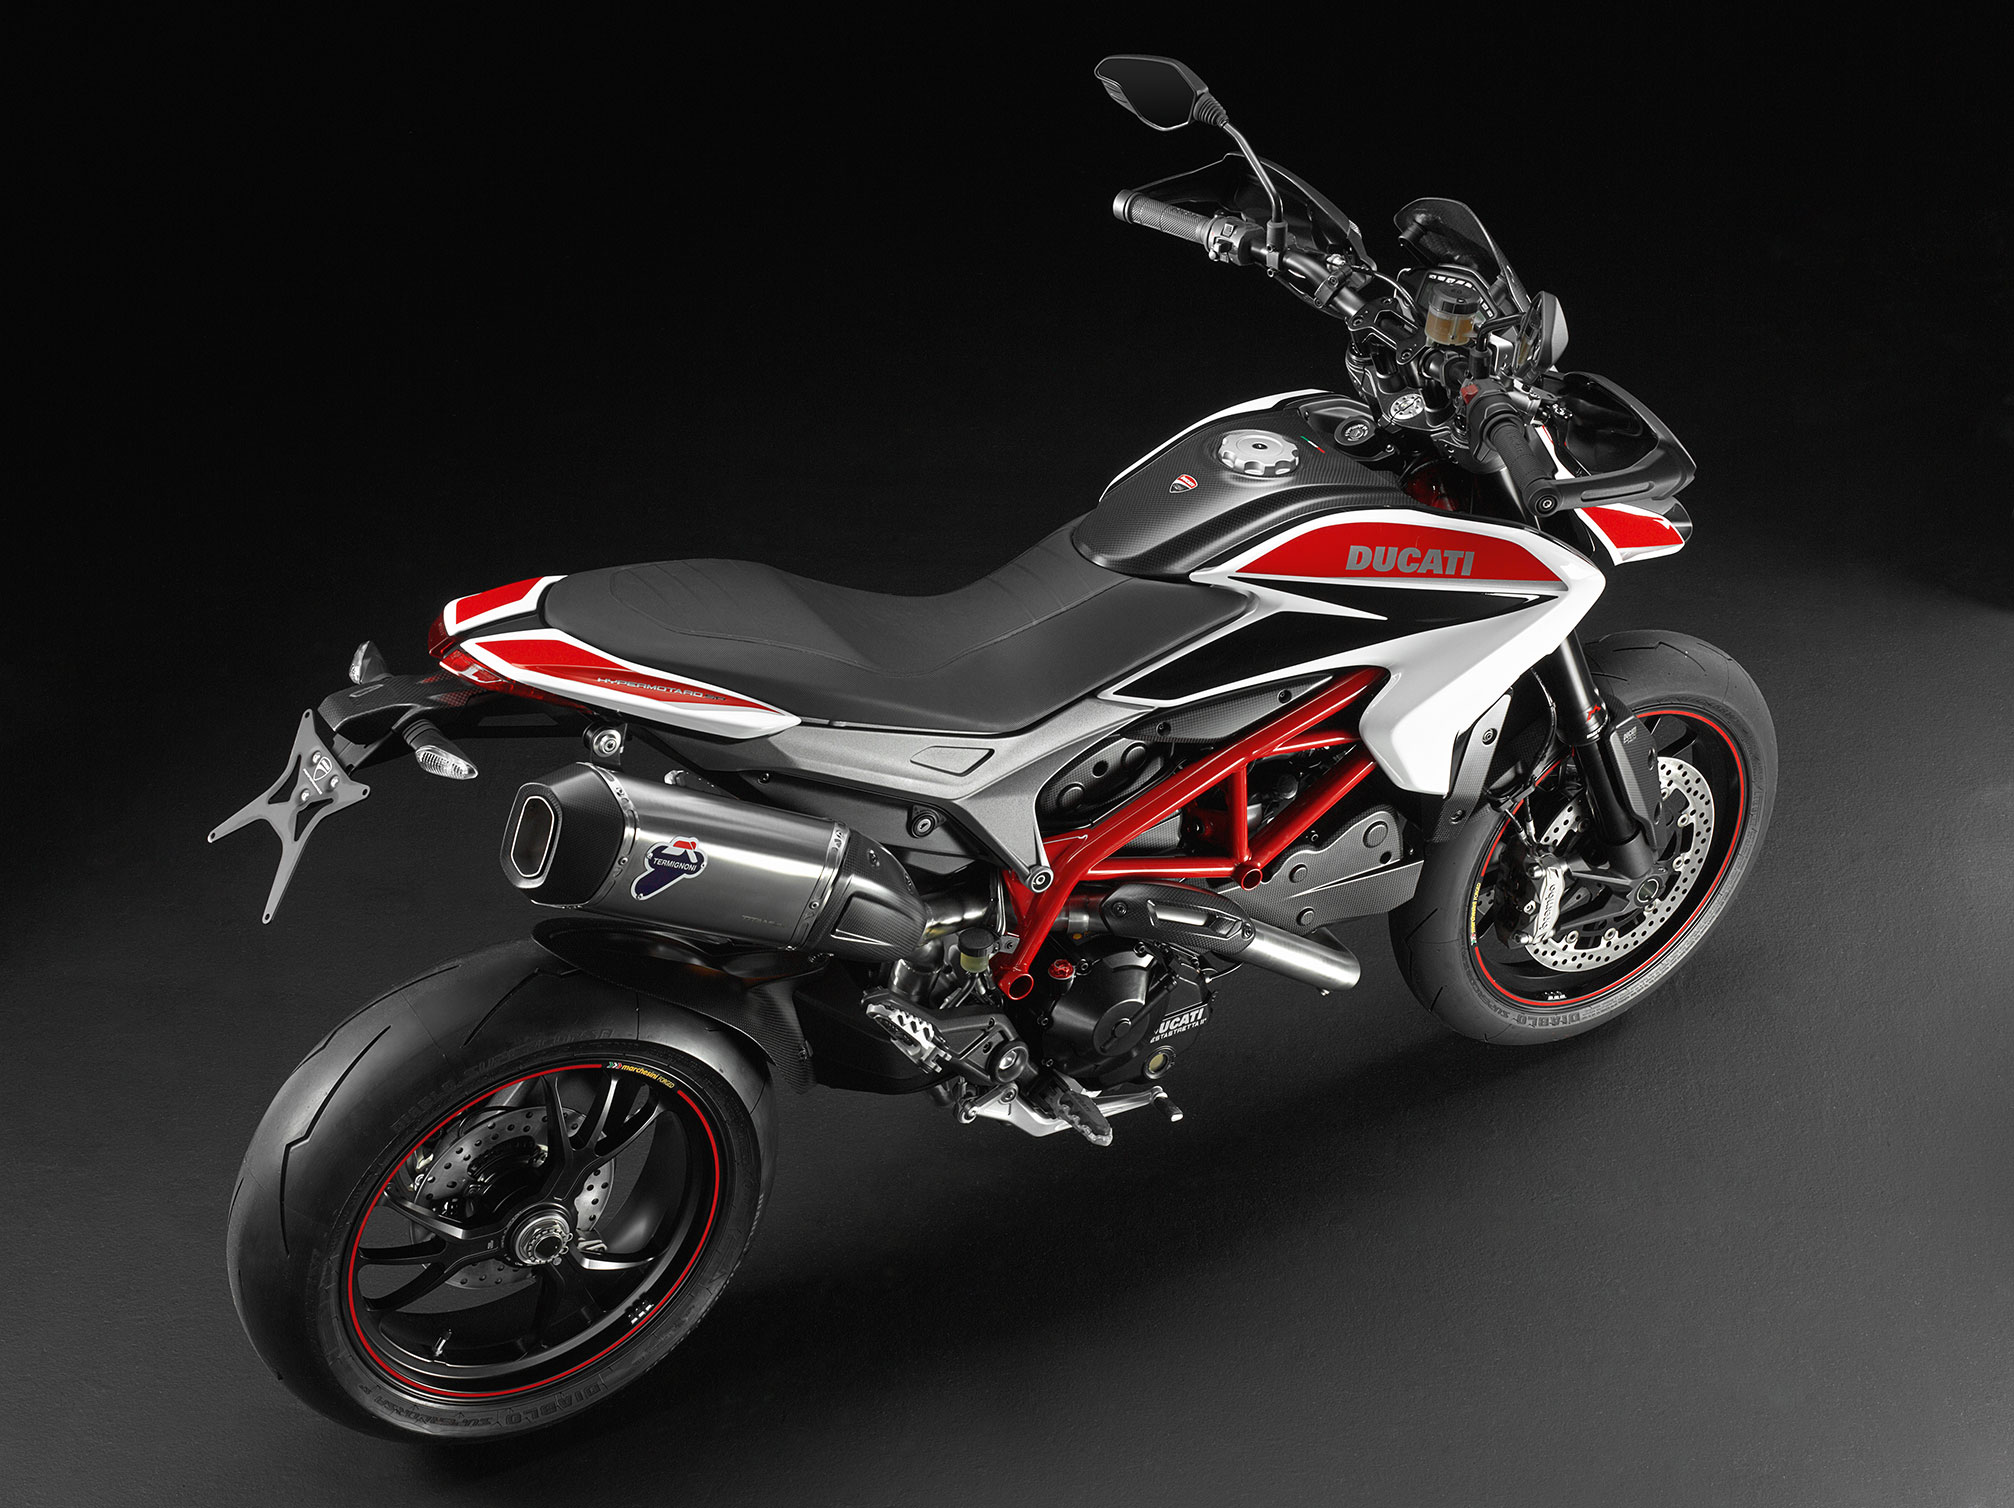 Ducati Hypermotard SP 2015 images #79641